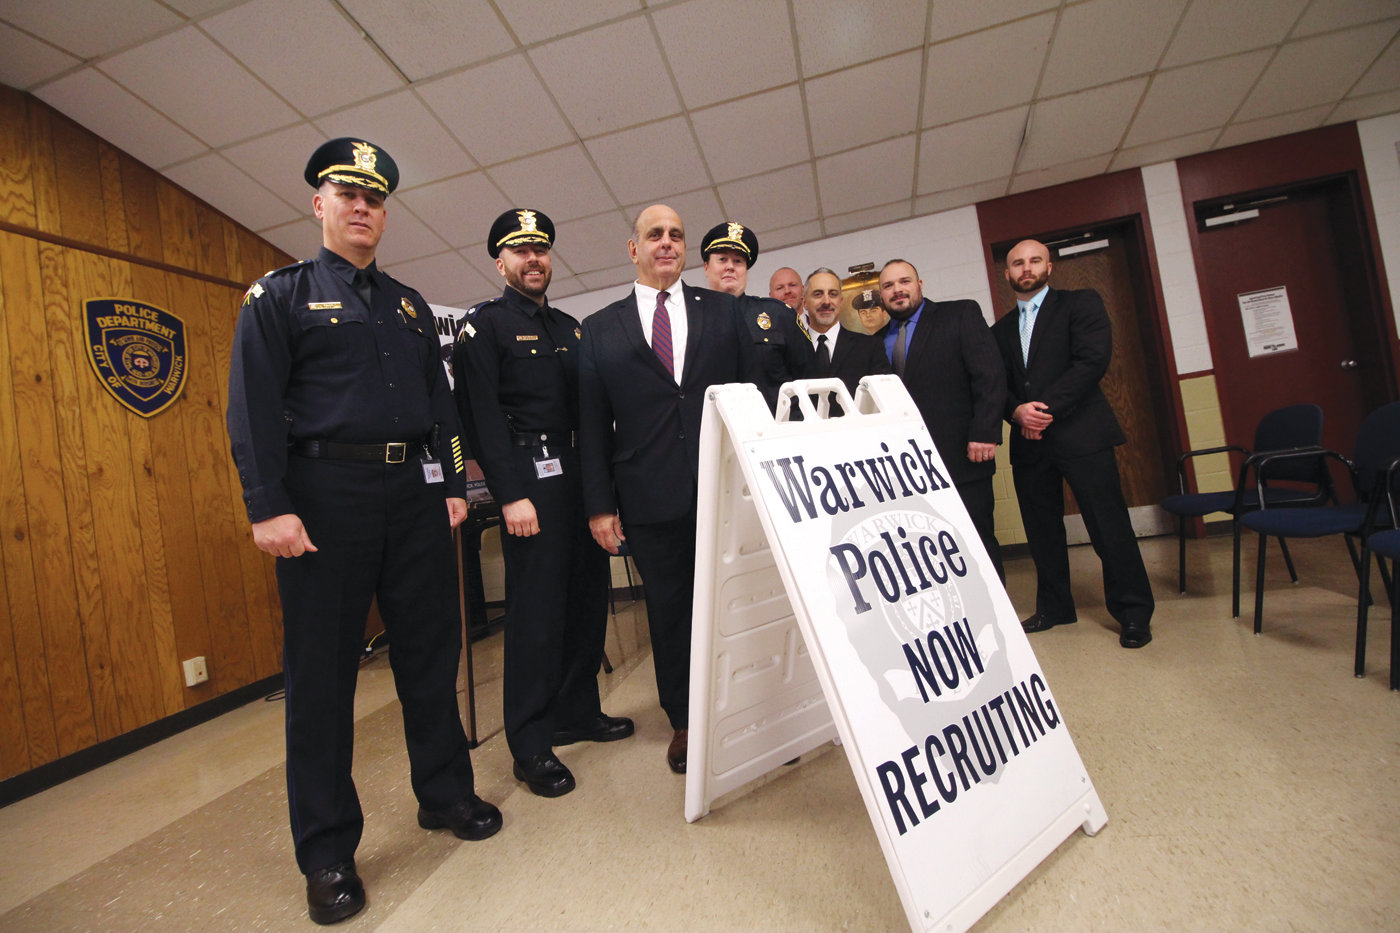 GETTING OUT THE WORD: Mayor Joseph Solomon joined members of the Warwick Police Department Wednesday to promote the recruitment drive that runs now through Jan. 31, 2020.